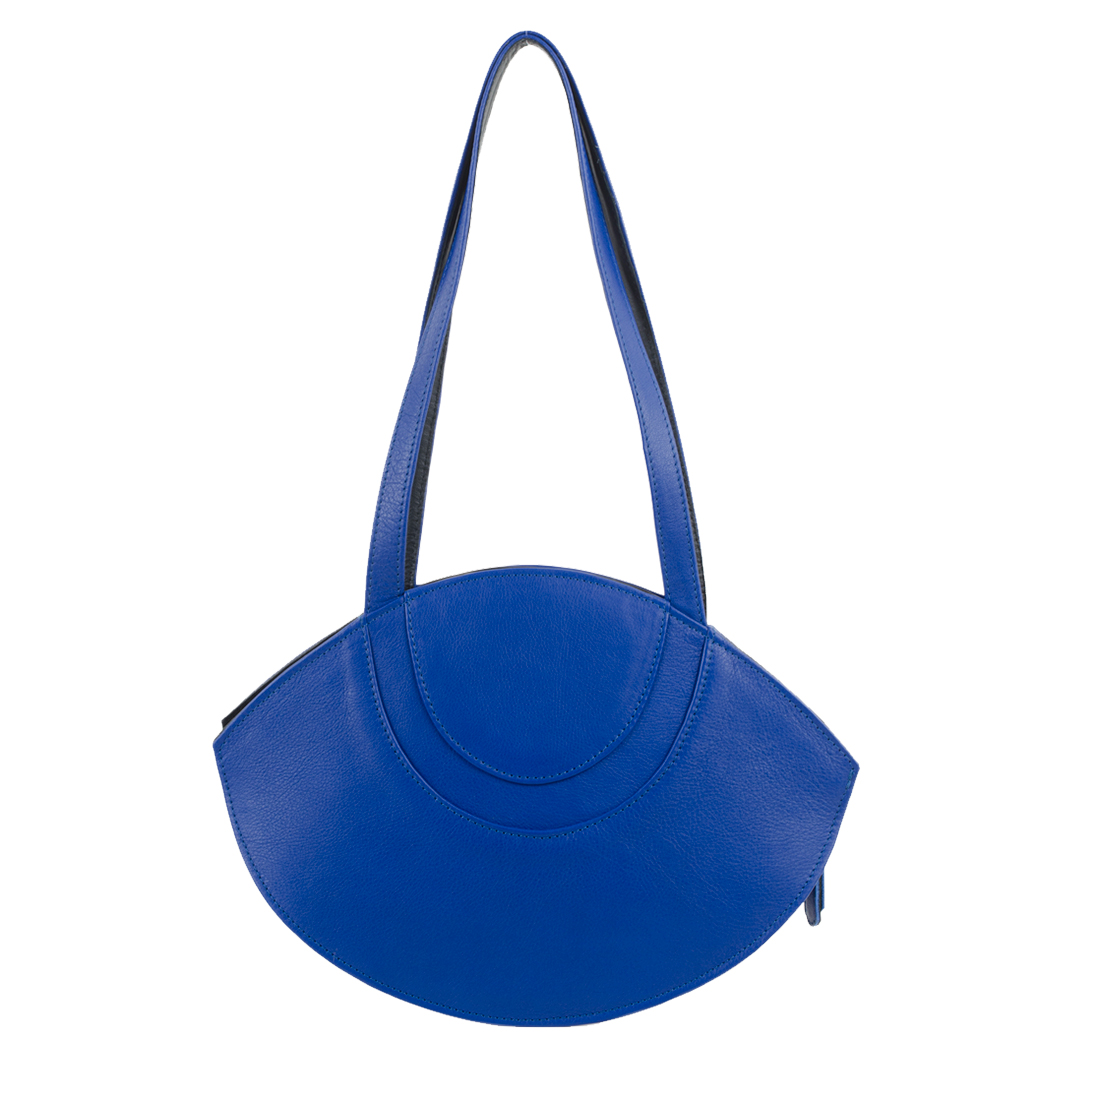 Sasha Blue Leather Shoulder Bag